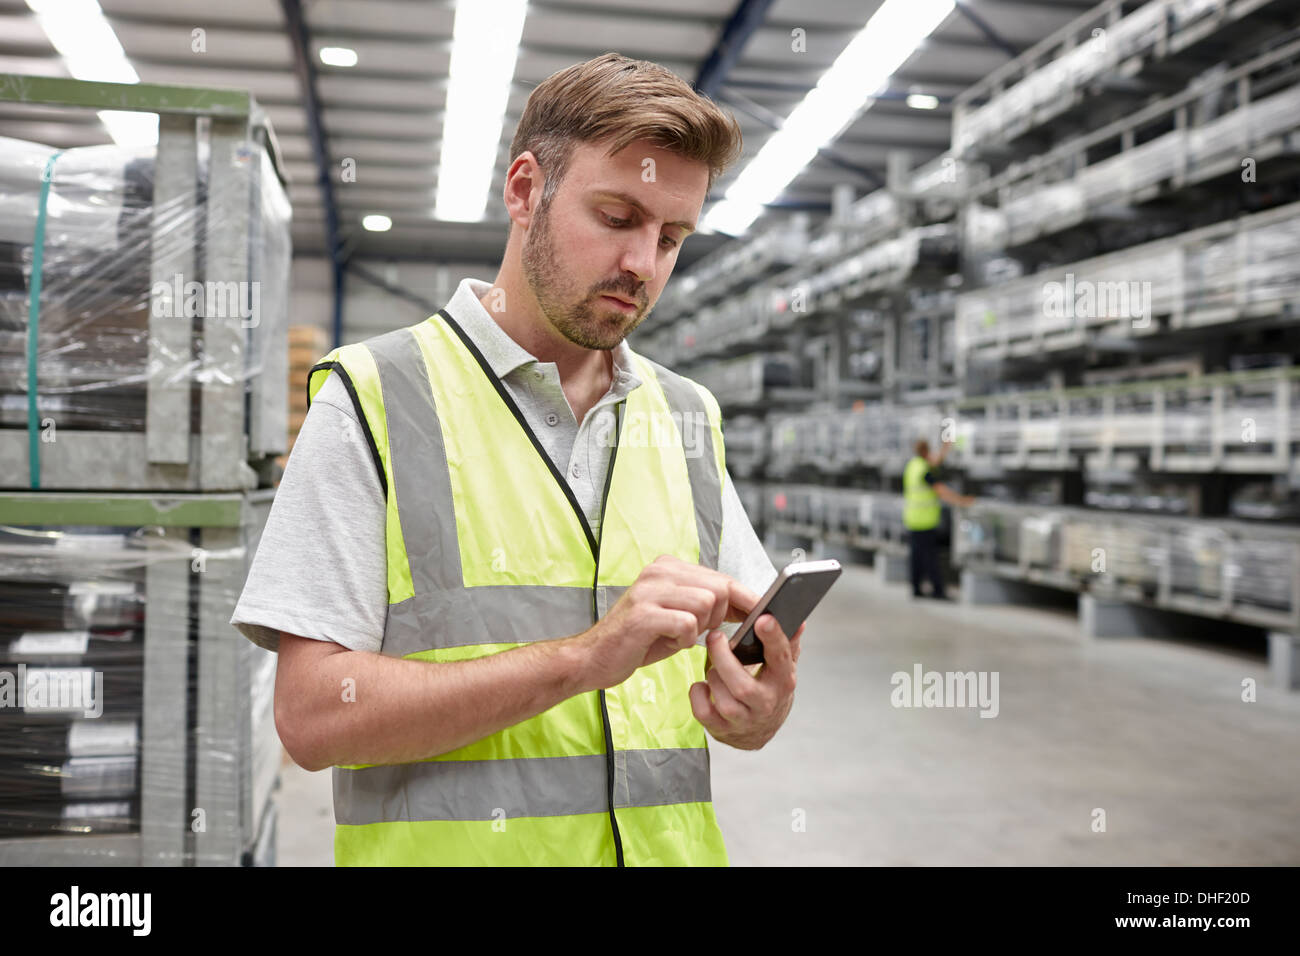 Portrait of worker using mobile phone in engineering warehouse Photo Stock